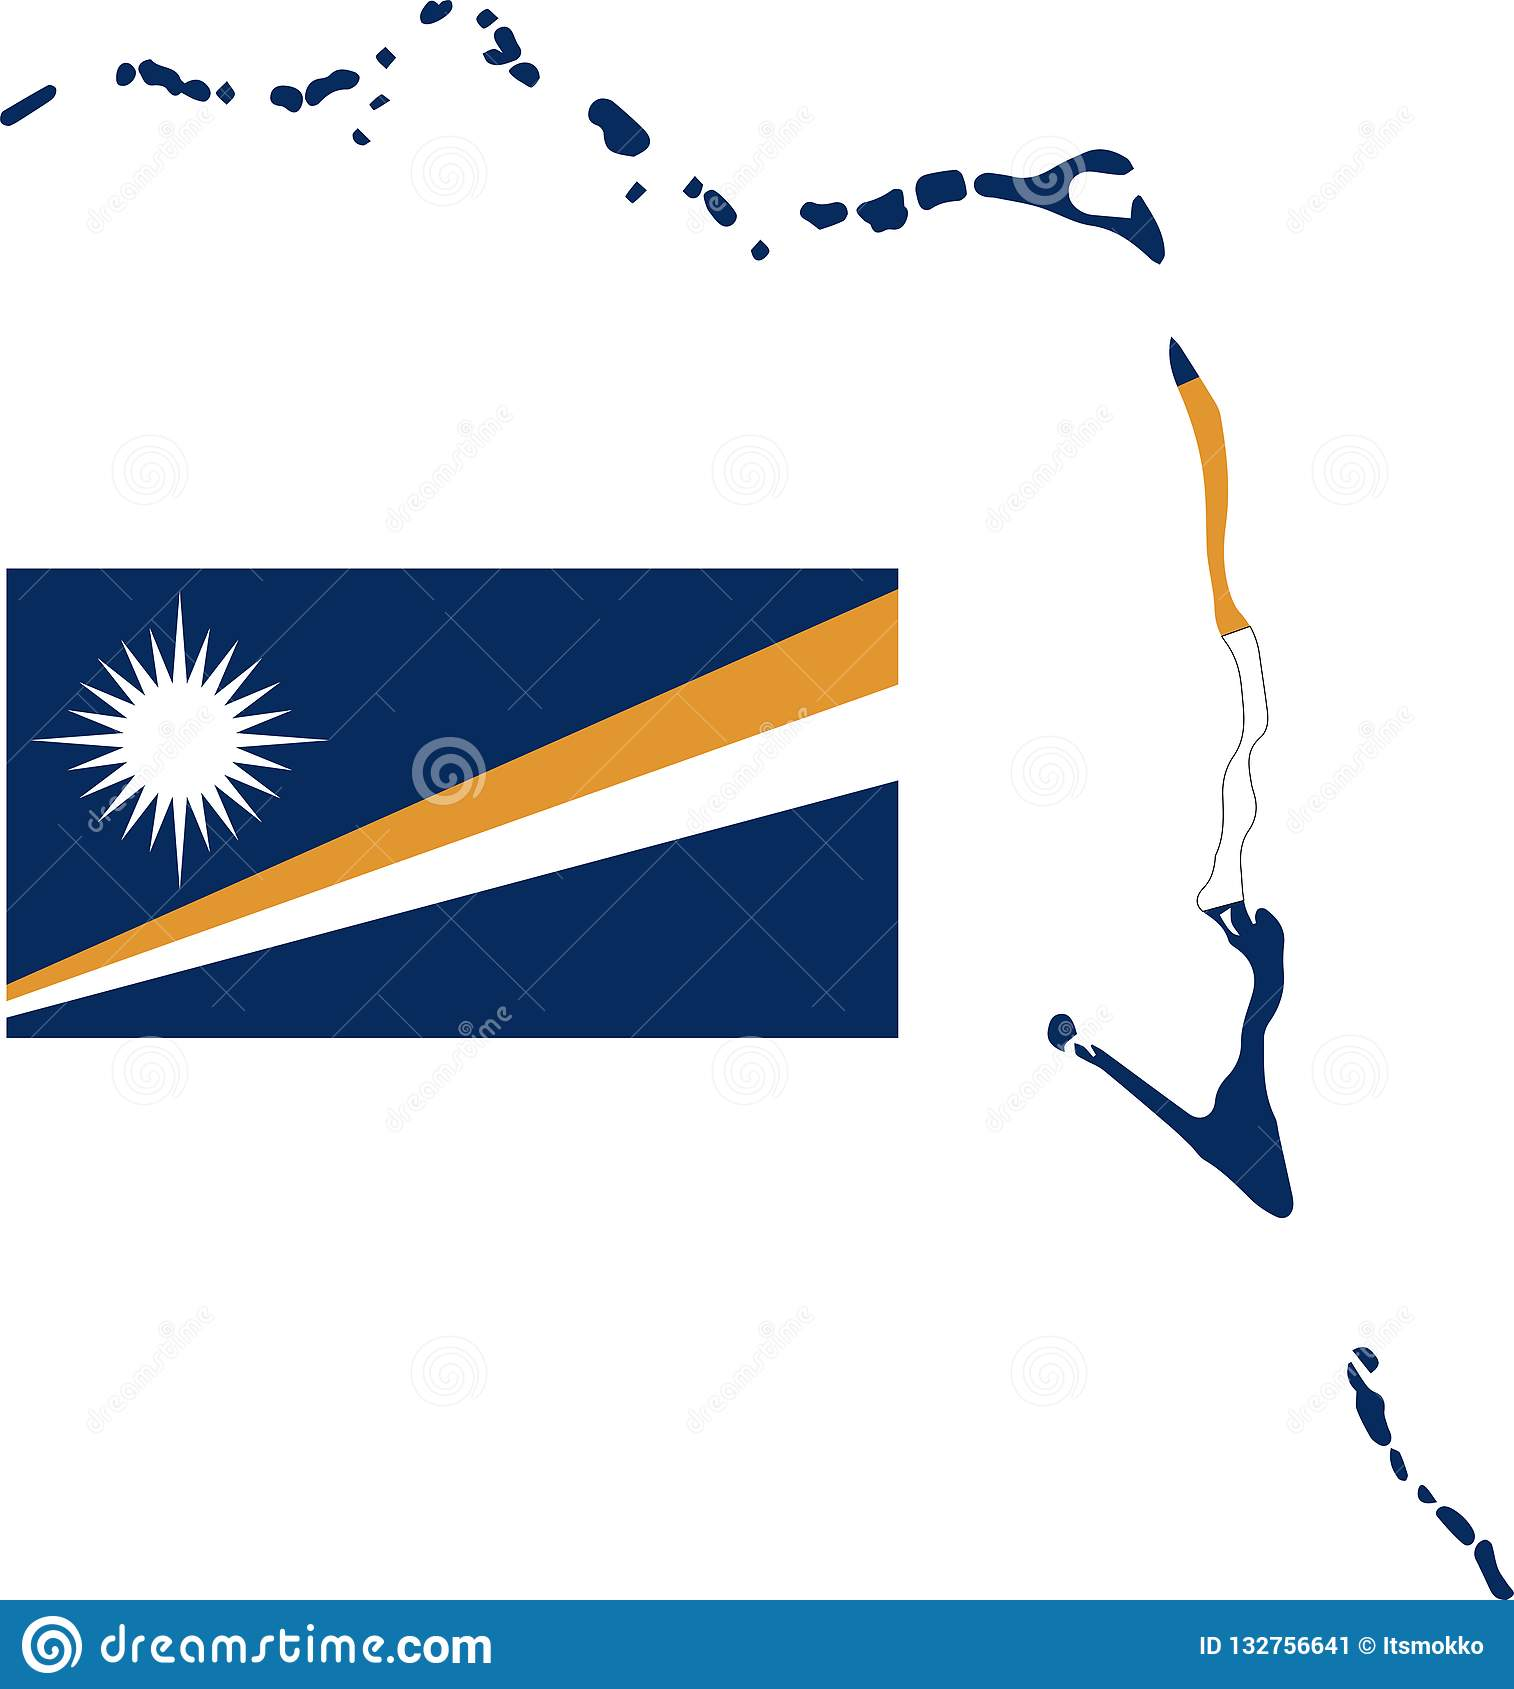 Vector Map Of Marshall Islands With Flag. Isolated, White ... on rwanda map, hawaii map, philippines map, belize map, northern mariana islands, american samoa, burma map, wake island, gilbert islands map, macau map, micronesia map, dominican republic map, east timor map, palau map, federated states of micronesia, solomon islands, mariana island map, egypt map, australia map, new caledonia, pacific map, alaska map, puerto rico map, new caledonia map, cook islands, oceania map, caroline islands map, papua new guinea,